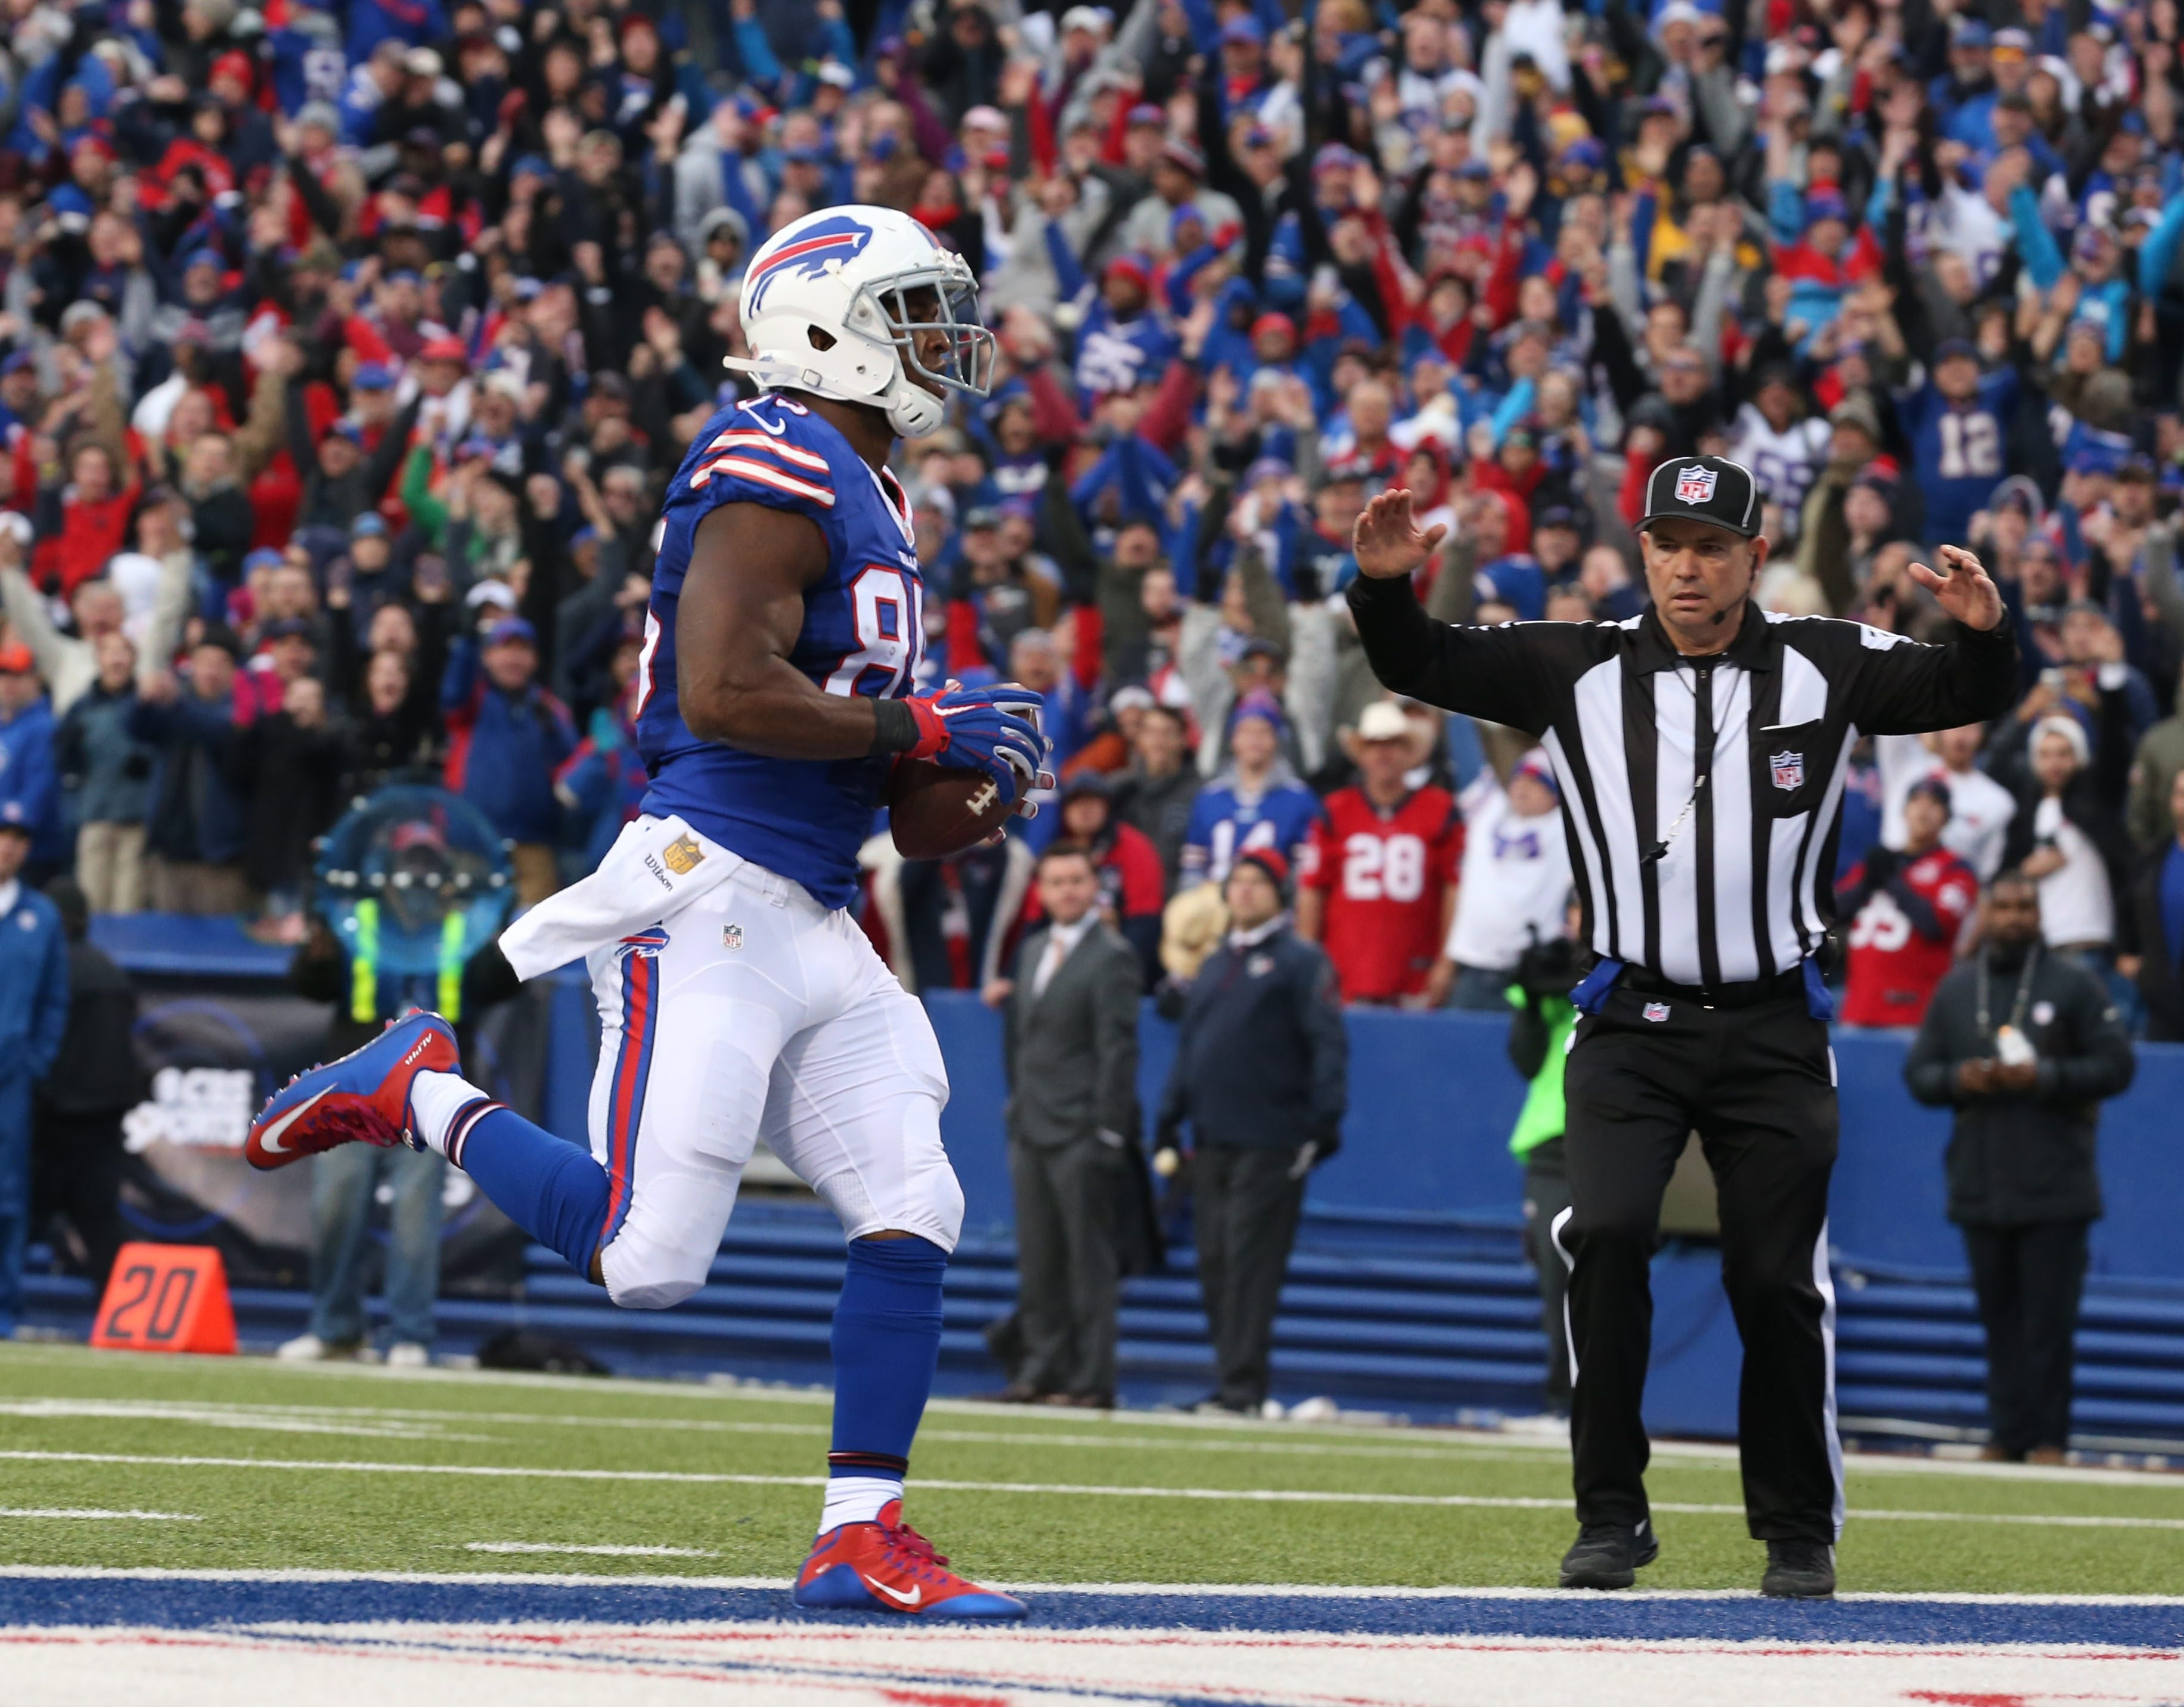 The Bills' Charles Clay waltzes into the end zone unguarded for what proved to be the game-clinching points in the fourth quarter against Houston.